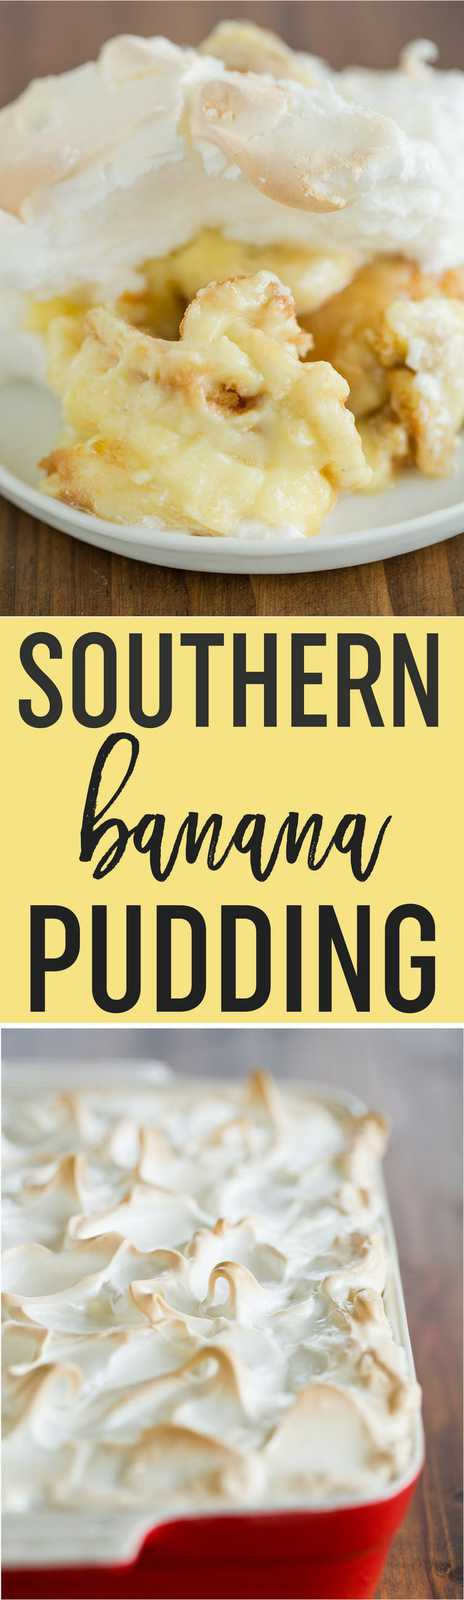 Traditional Southern Banana Pudding starts with a layer of Nilla wafers, sliced bananas, homemade vanilla pudding, and is topped with piles of meringue!